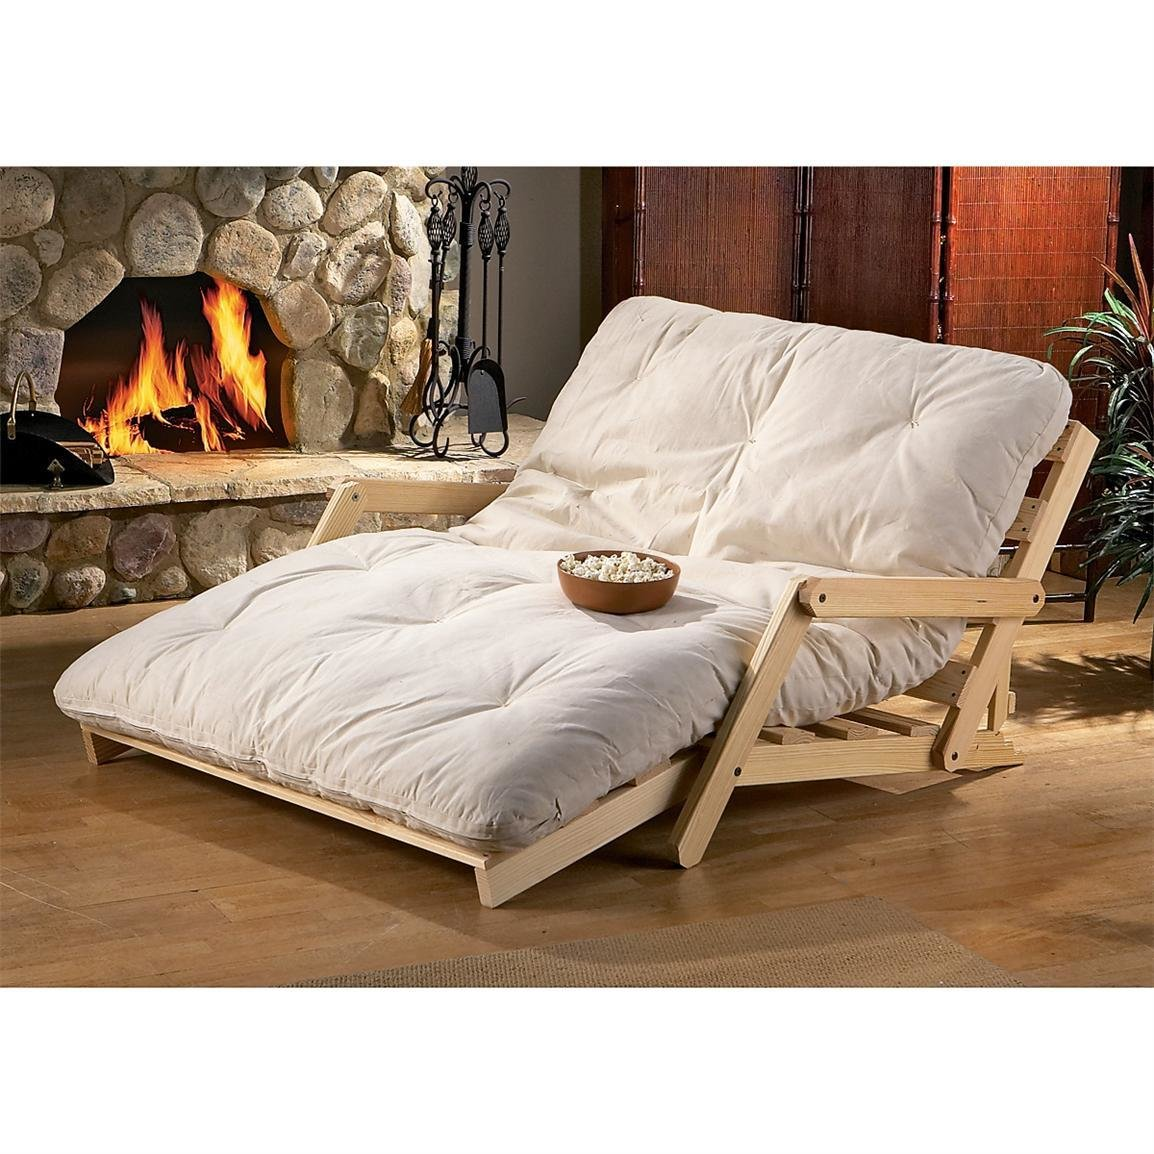 Best Trifecta Lounger Natural 32174 Living Room Furniture With Pictures